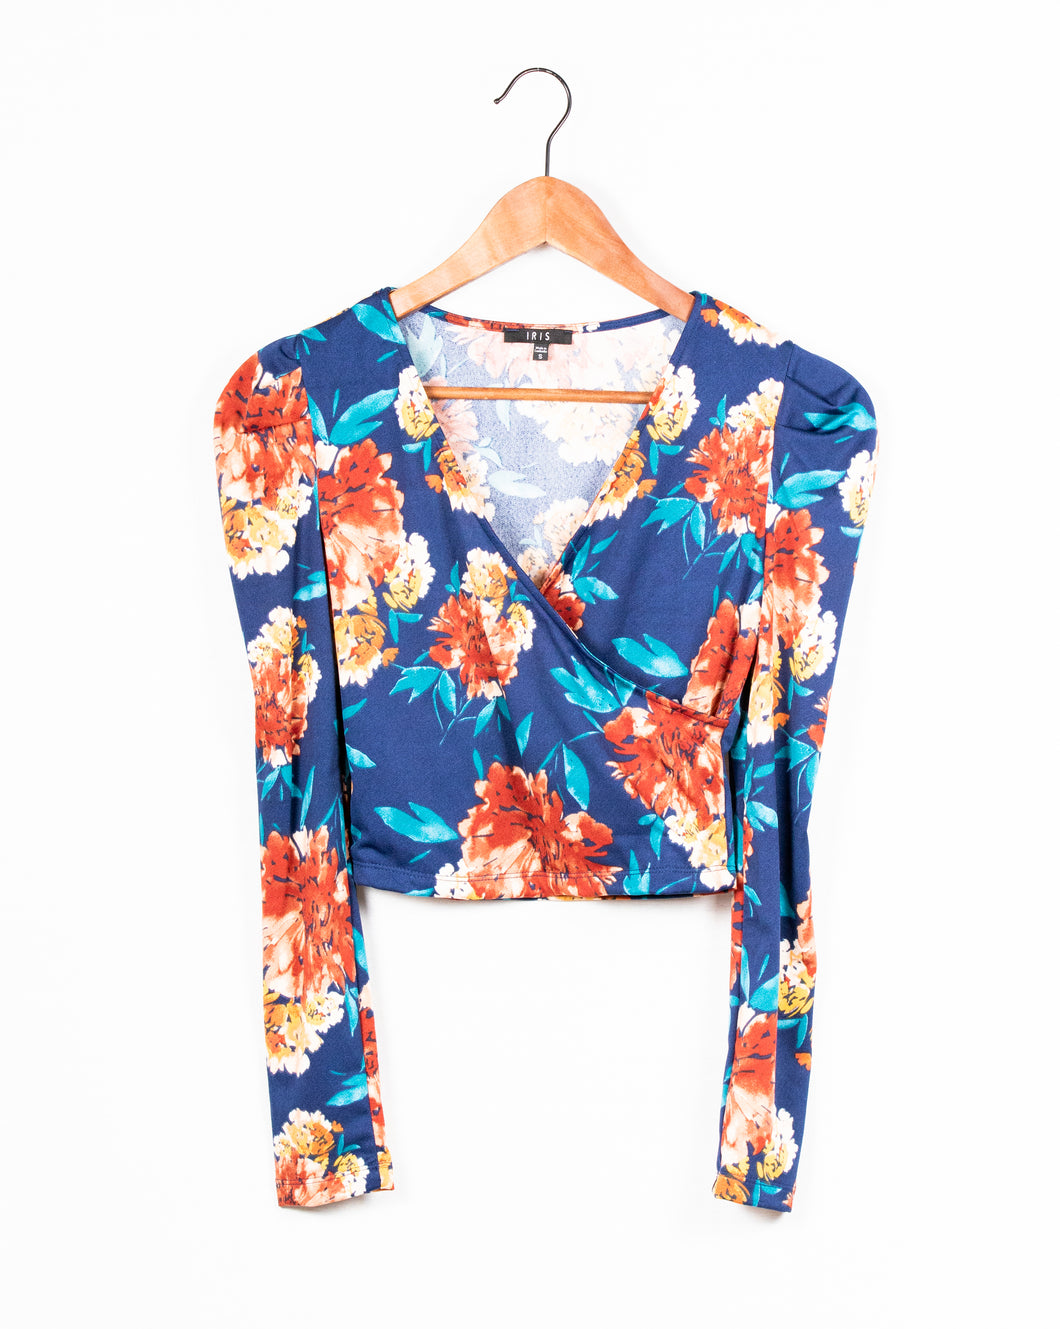 L/S FLORAL ROUCHED SHOULDER SHIRT - 512 In Style